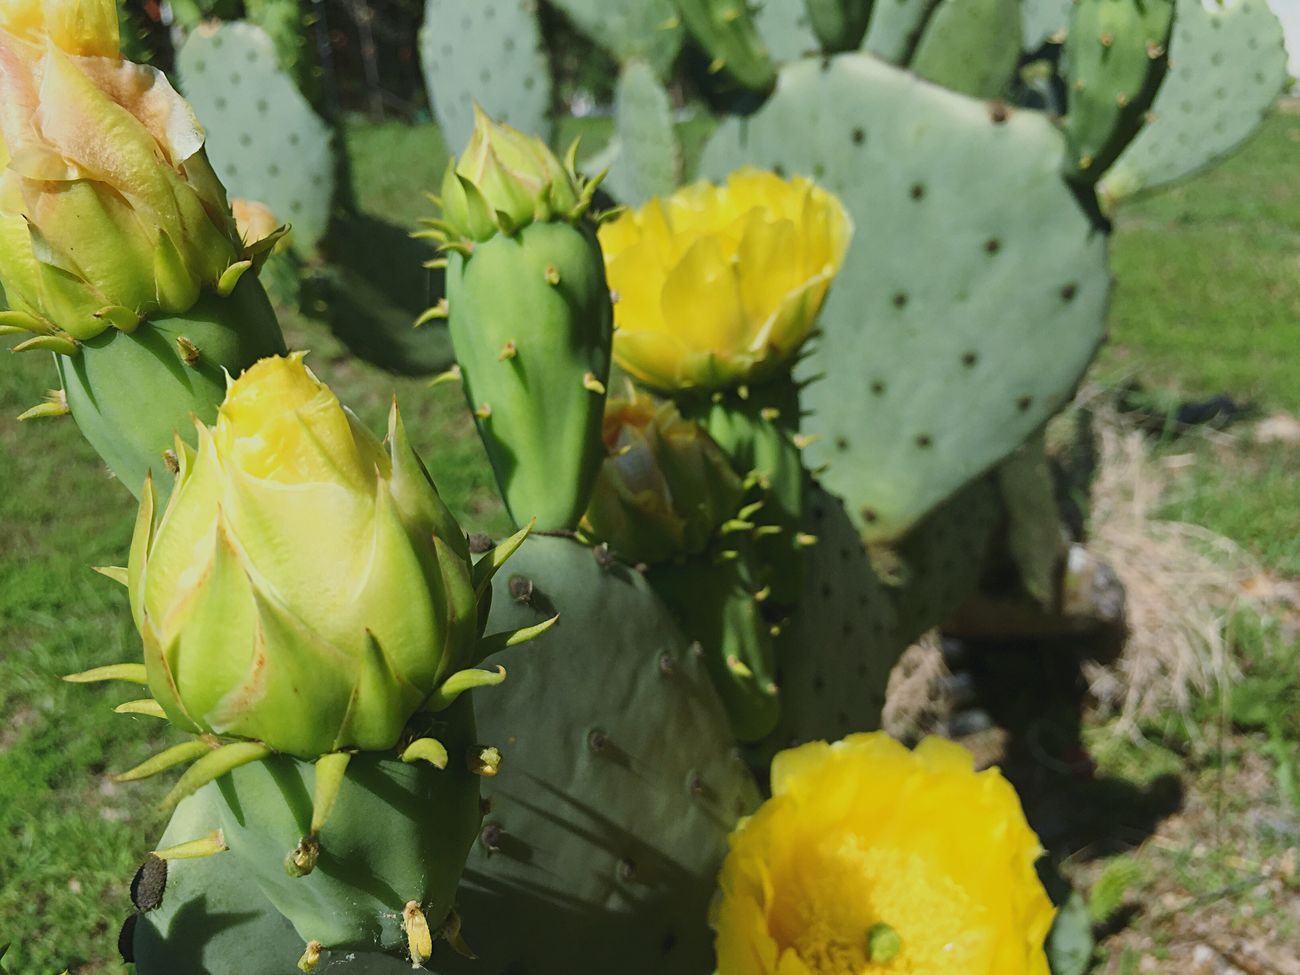 Cactus Cactusflower Flower Yellow Flower Head Nature Outdoors